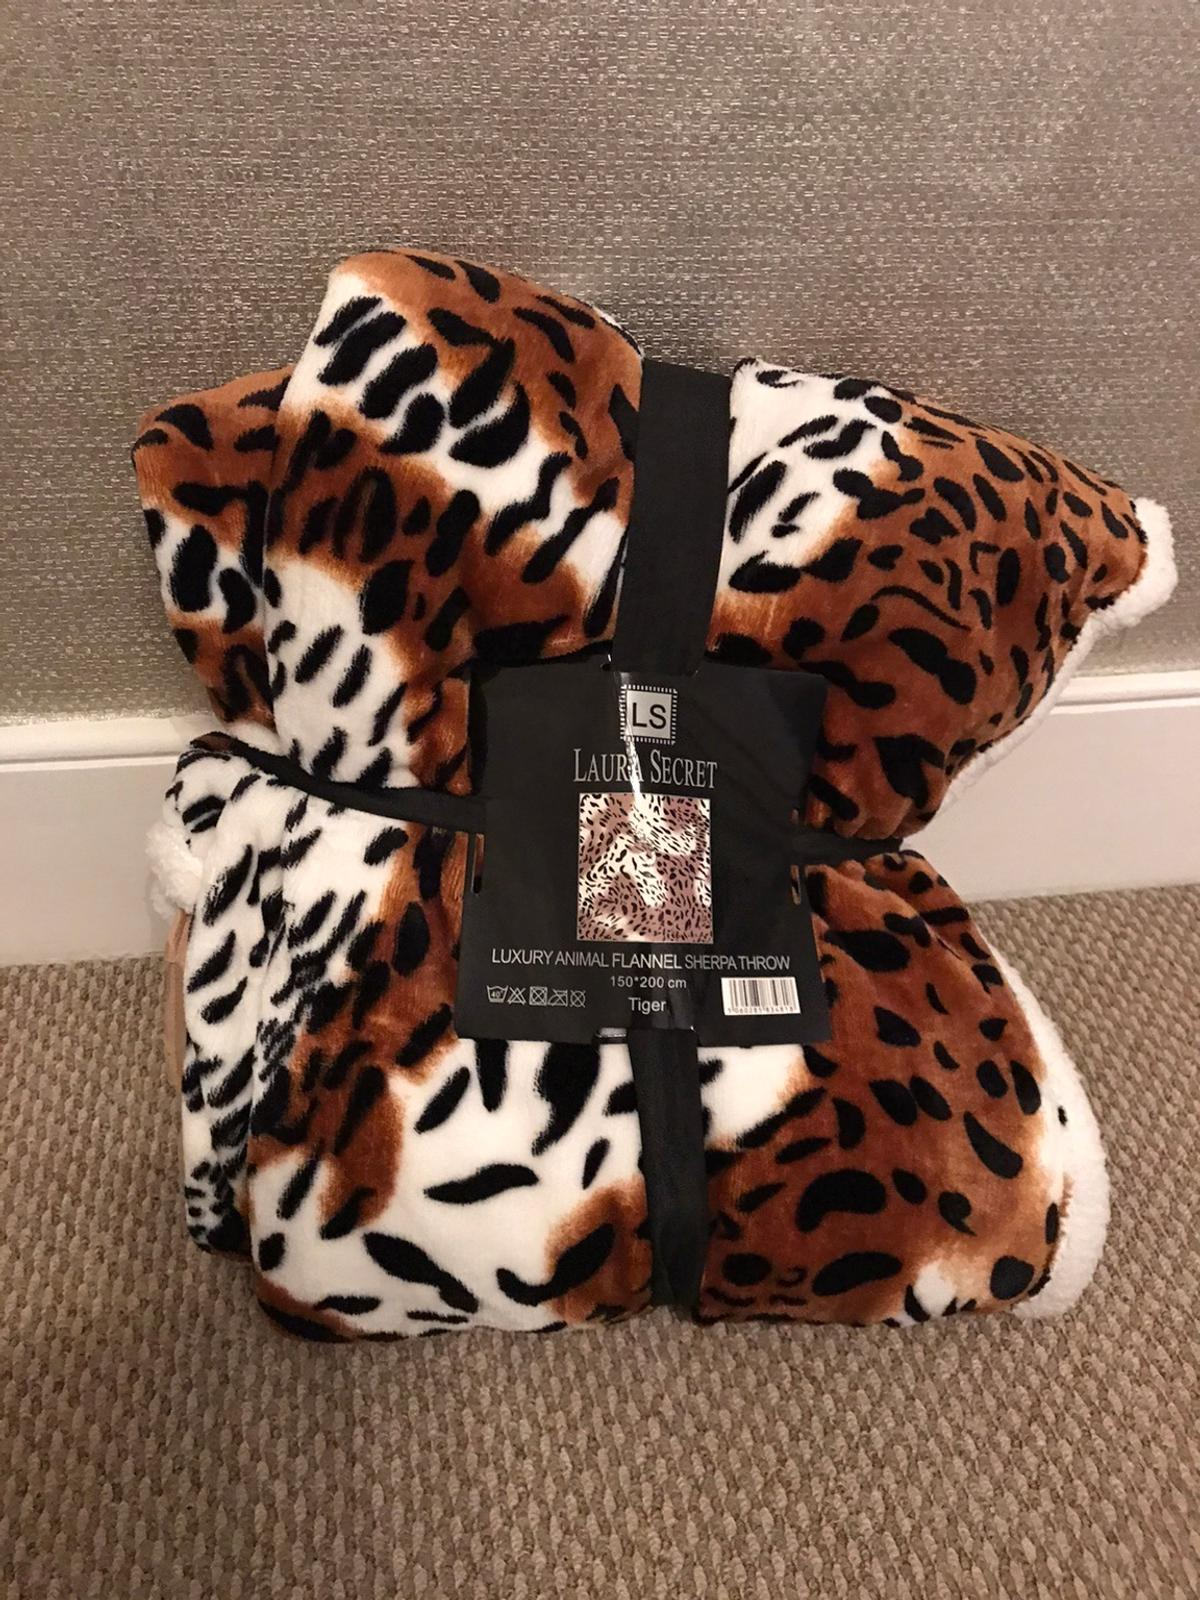 Brand new tiger print blanket by Laura secret Measures 150 x 200xm Lovely and thick material Pick up only